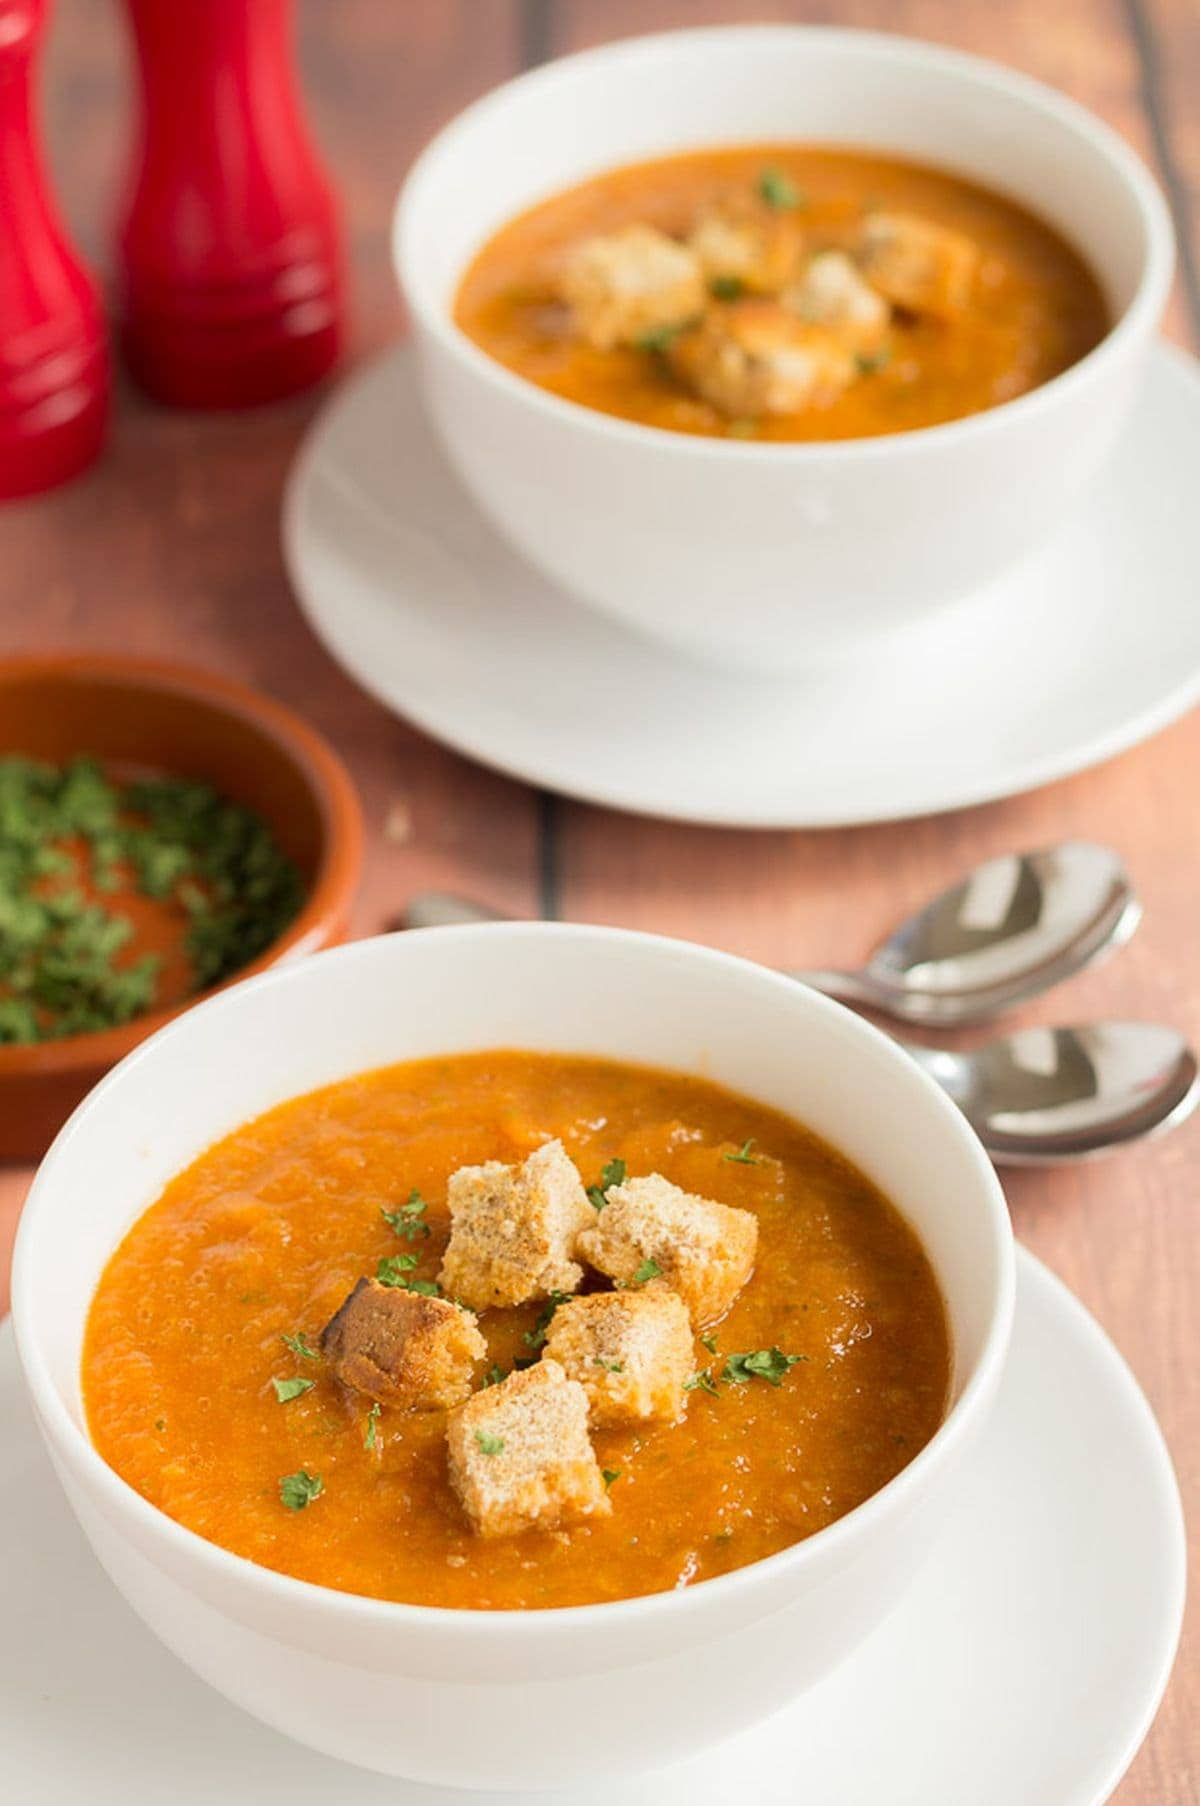 Two bowls of Mediterranean vegetable soup garnished with croutons.